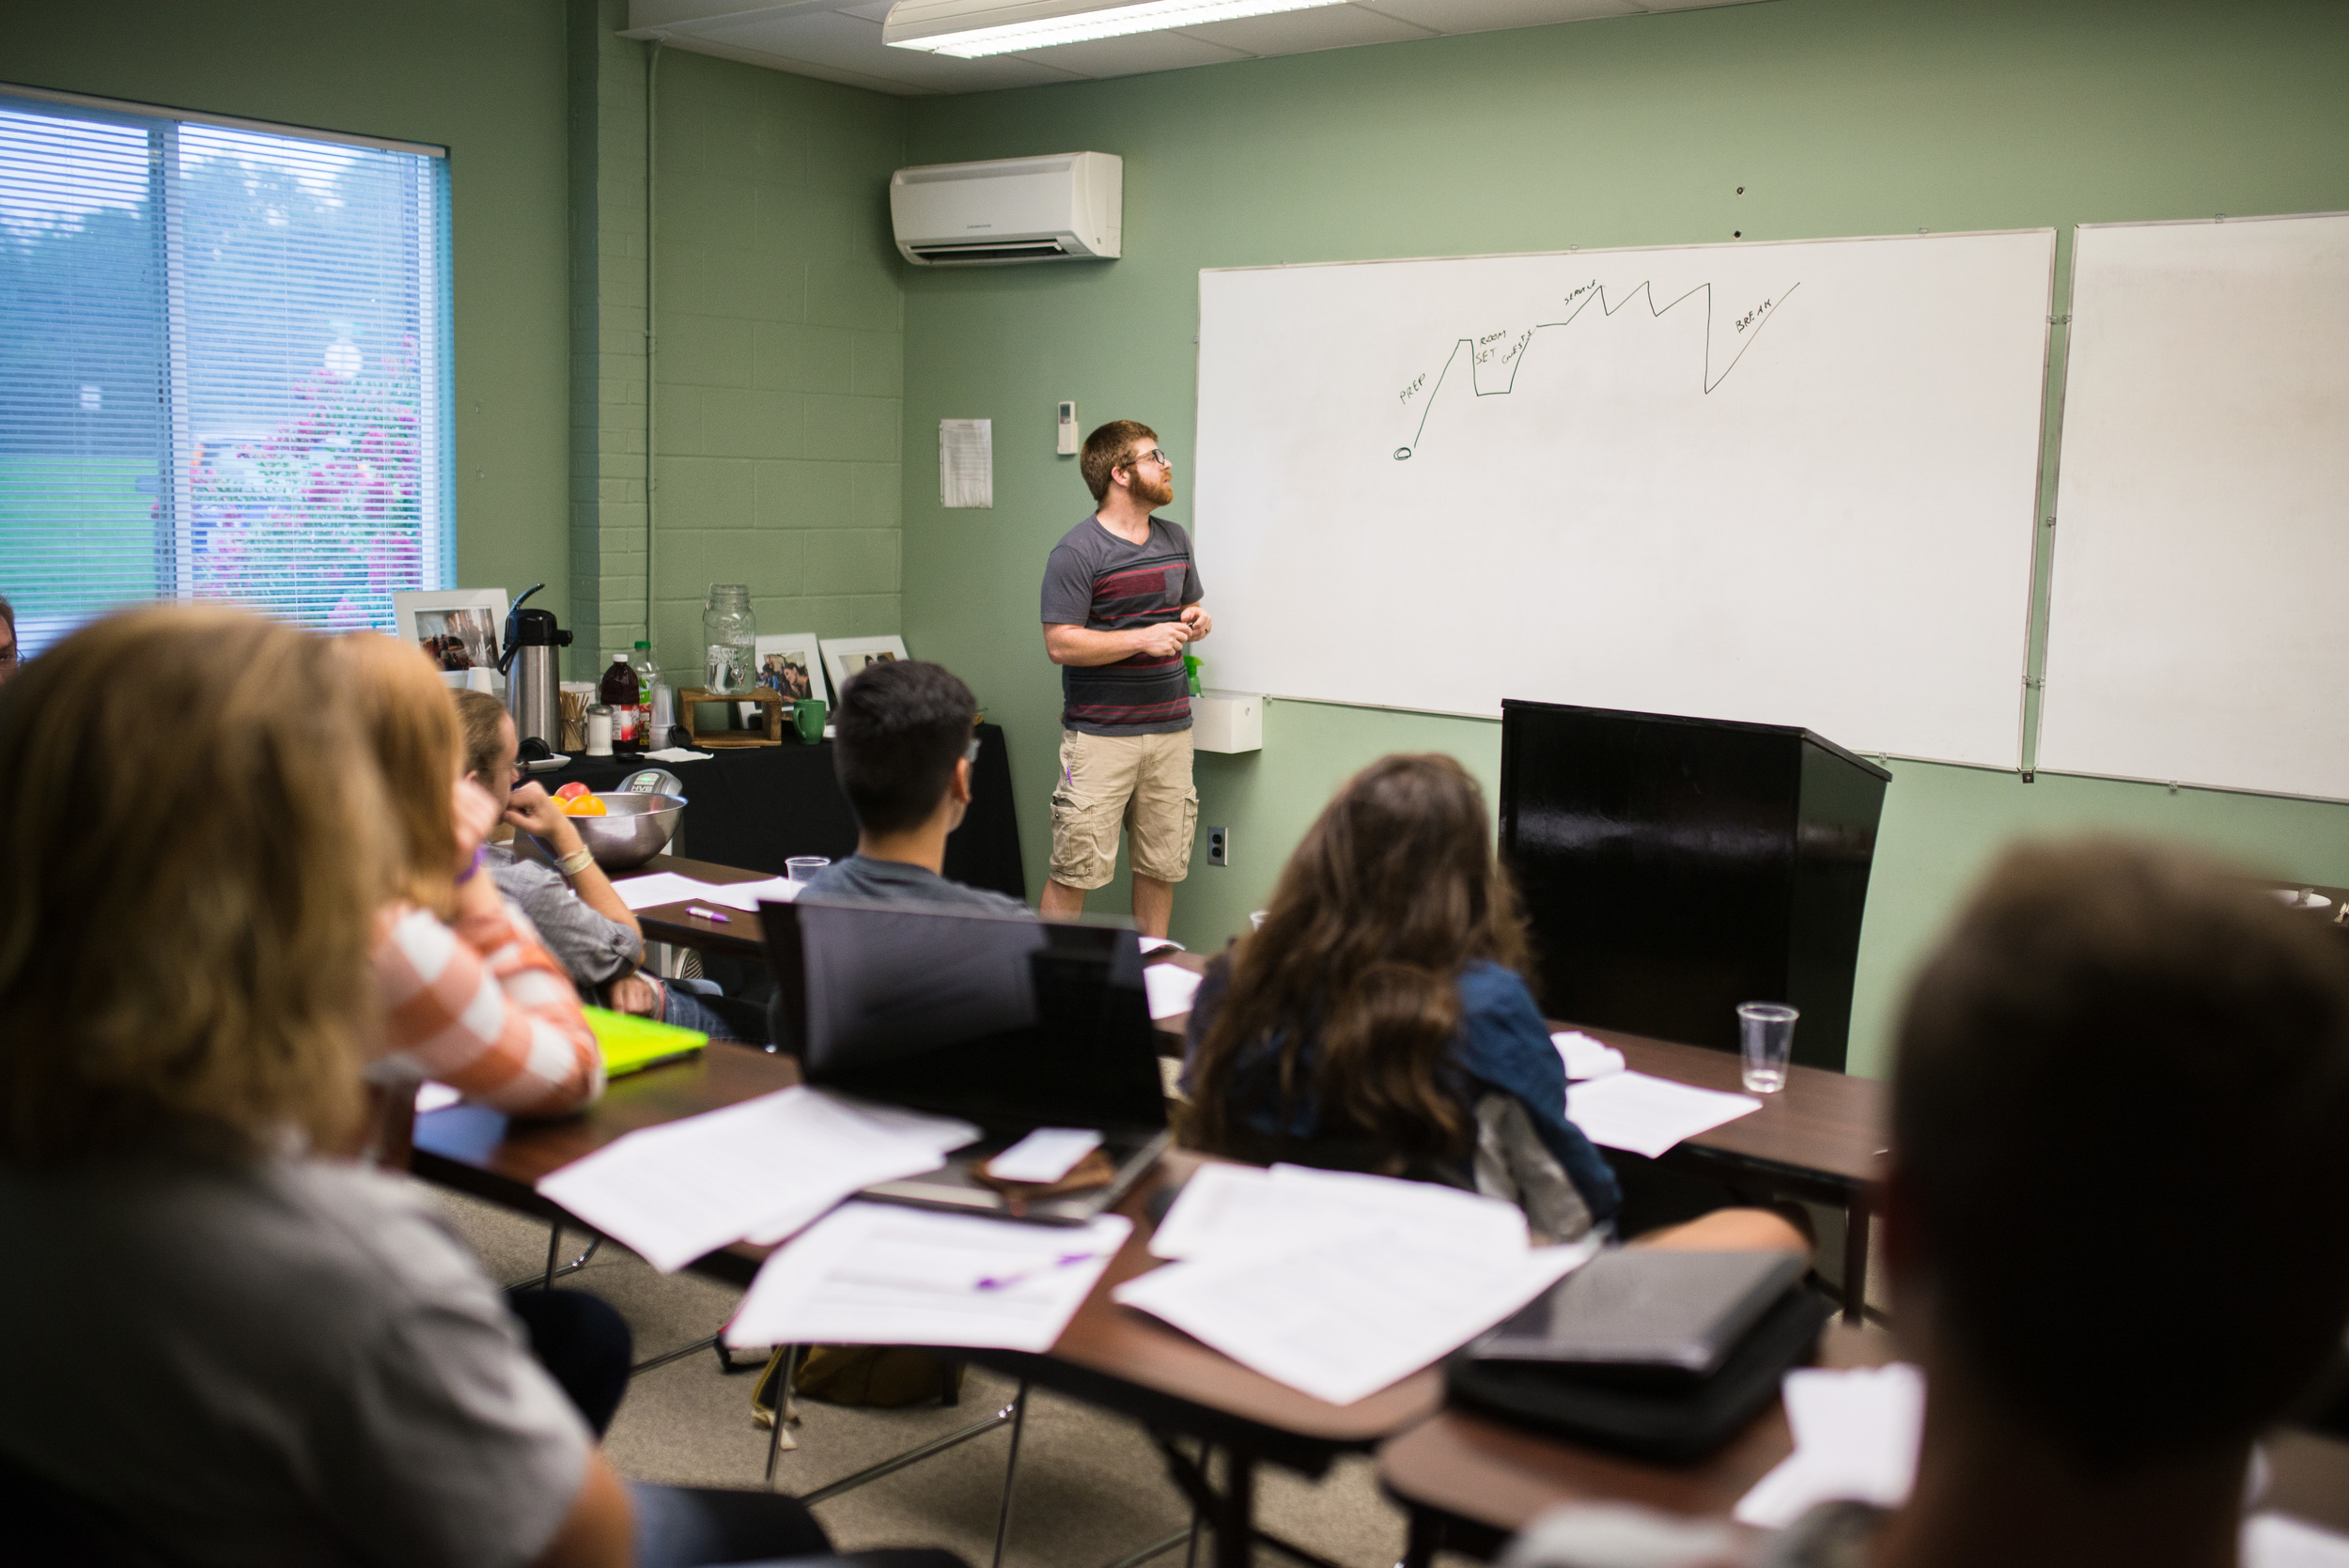 Mitch Buchanan conducts job training for new students at the Institute.